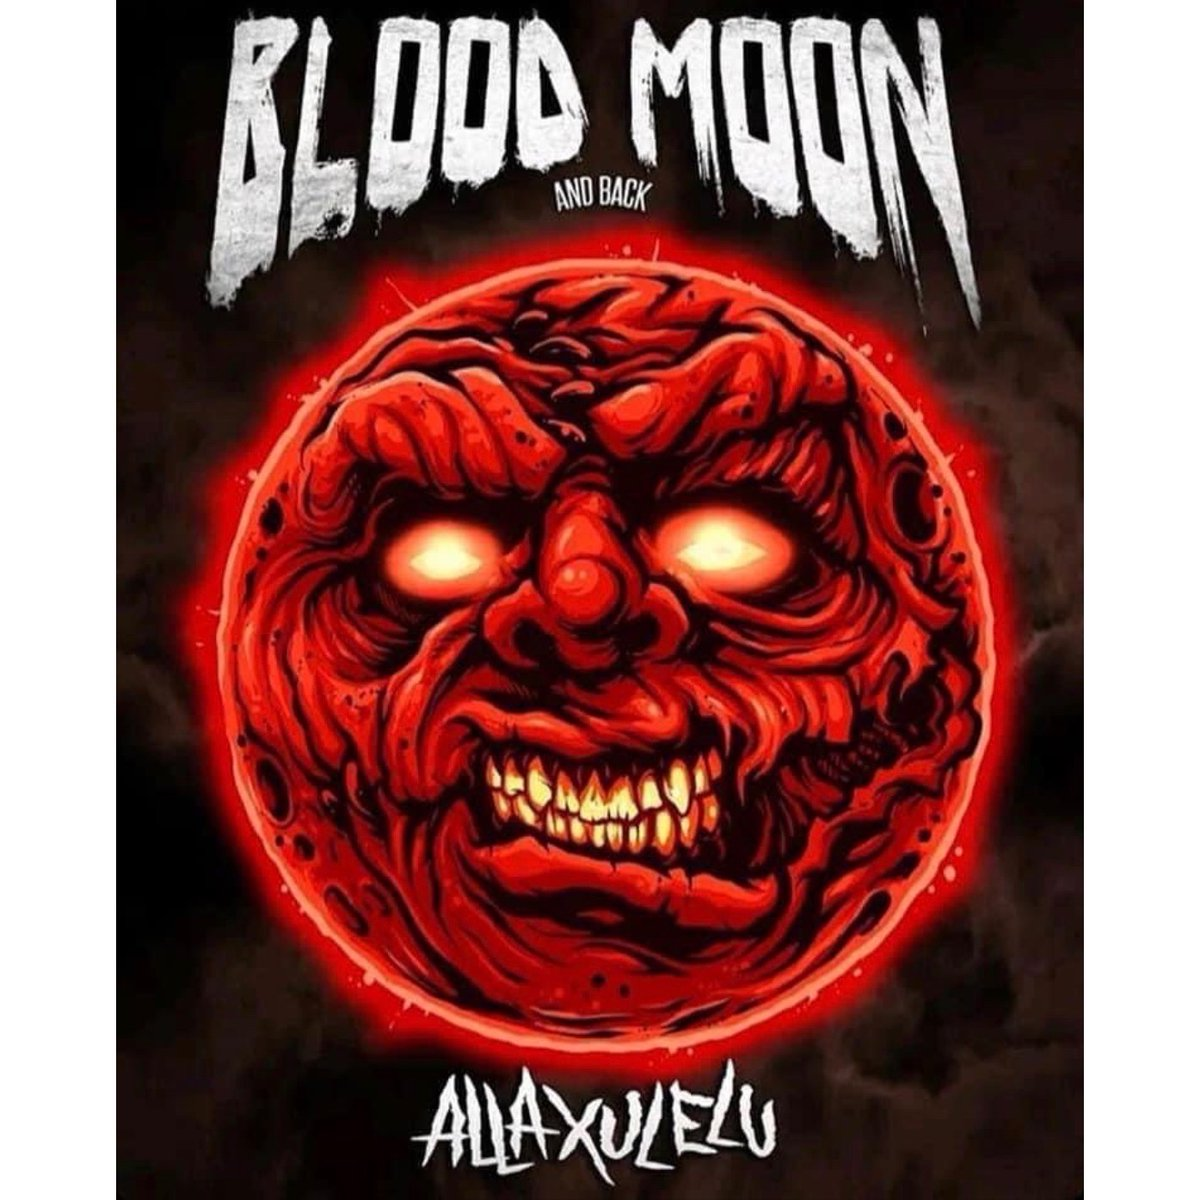 "Halloween is almost here... Looks 👀 like Alla Xul Elu - AXE are working on the ULTIMATE soundtrack!!! Check out ""Blood Moon And Back"": https://t.co/Cvvxlko27E #TheUndergroundAustralia #AllaXulElu #Axe #MNE2020 #Underground #MajikNinjaAustralia https://t.co/t3WEMbcmB0"